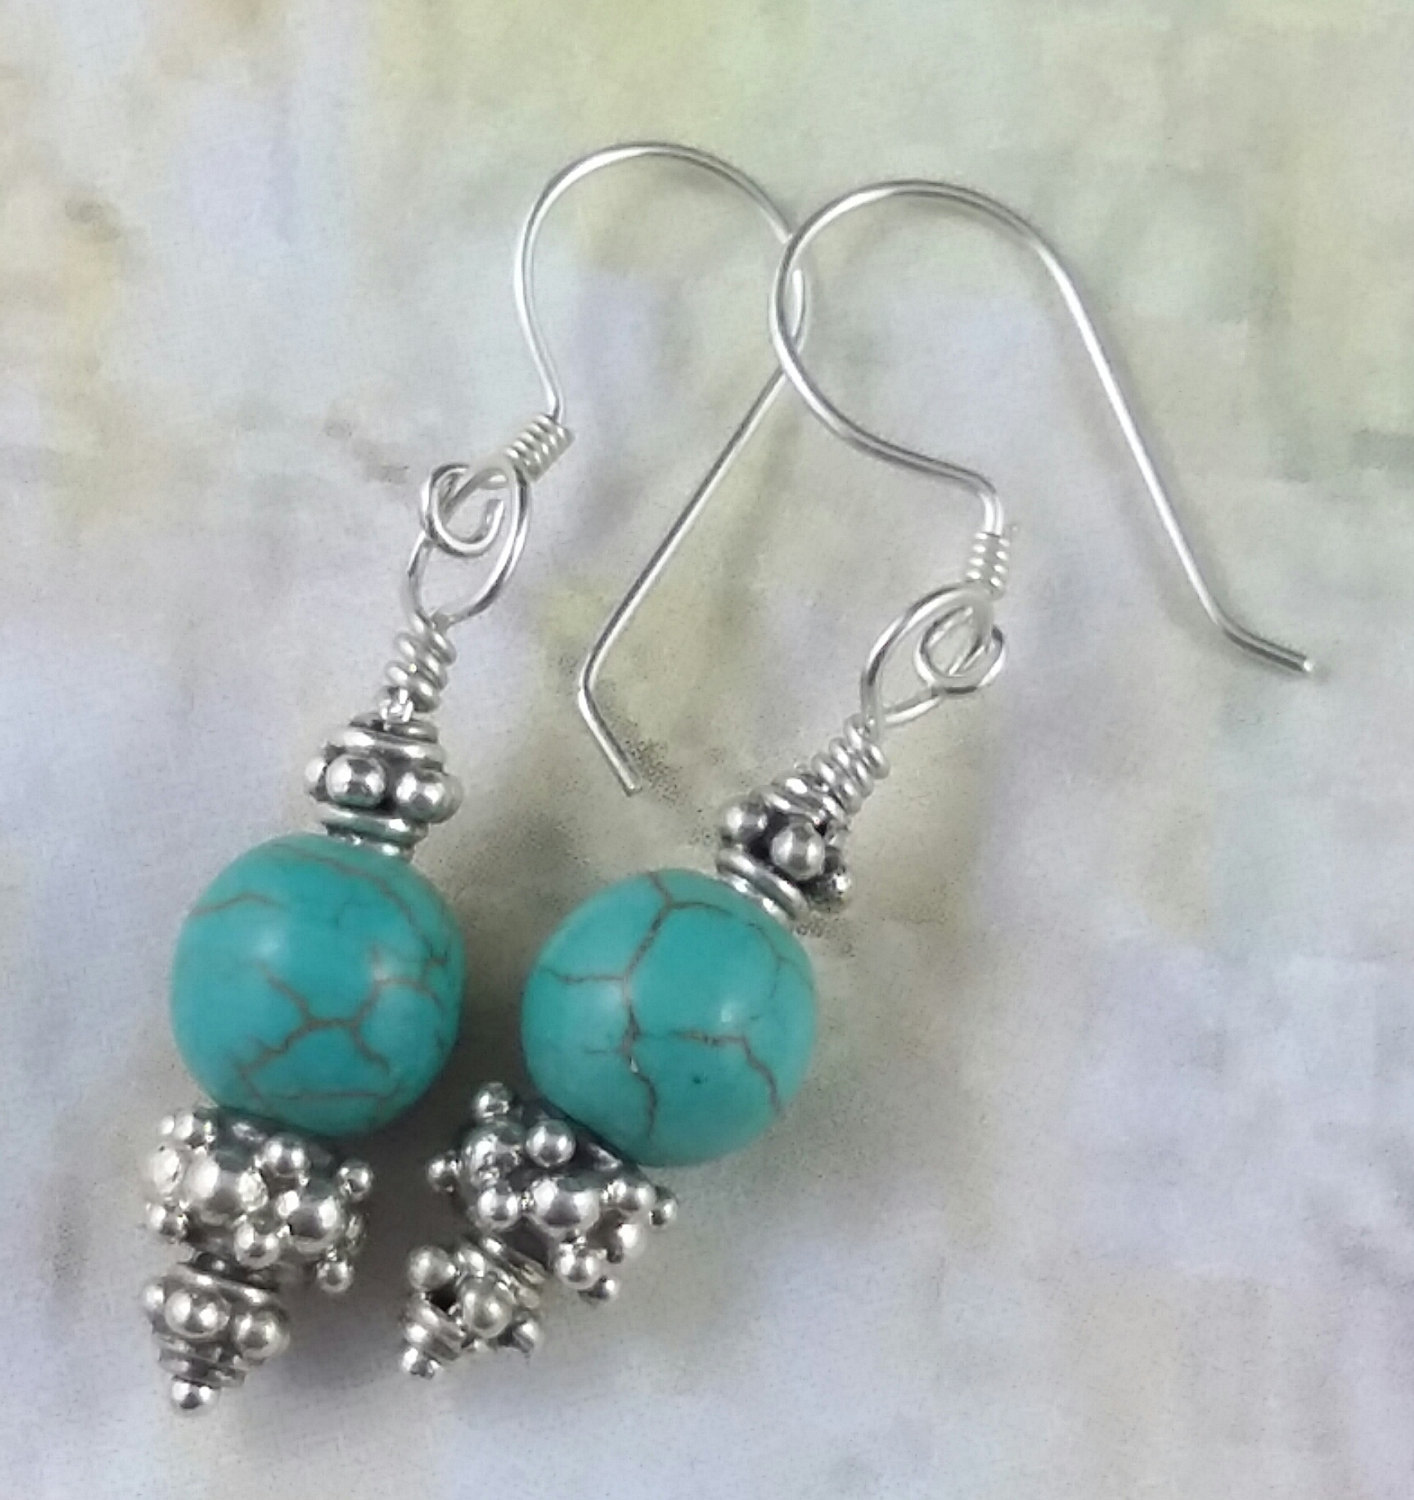 Turquoise Sterling Silver Decorative Handmade Earrings Green Blue Semi Precious Stones Gems Gemstone Dangle 925 Hook